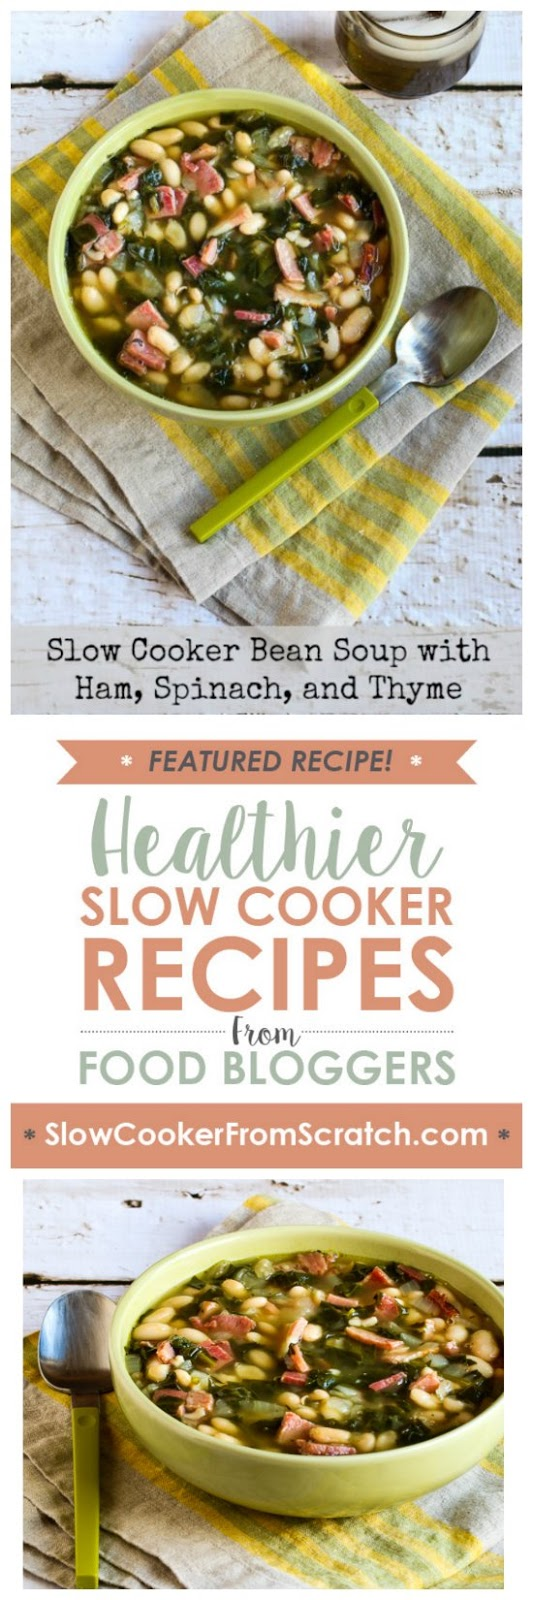 Slow Cooker Bean Soup with Ham, Spinach, and Thyme from Kalyn's Kitchen